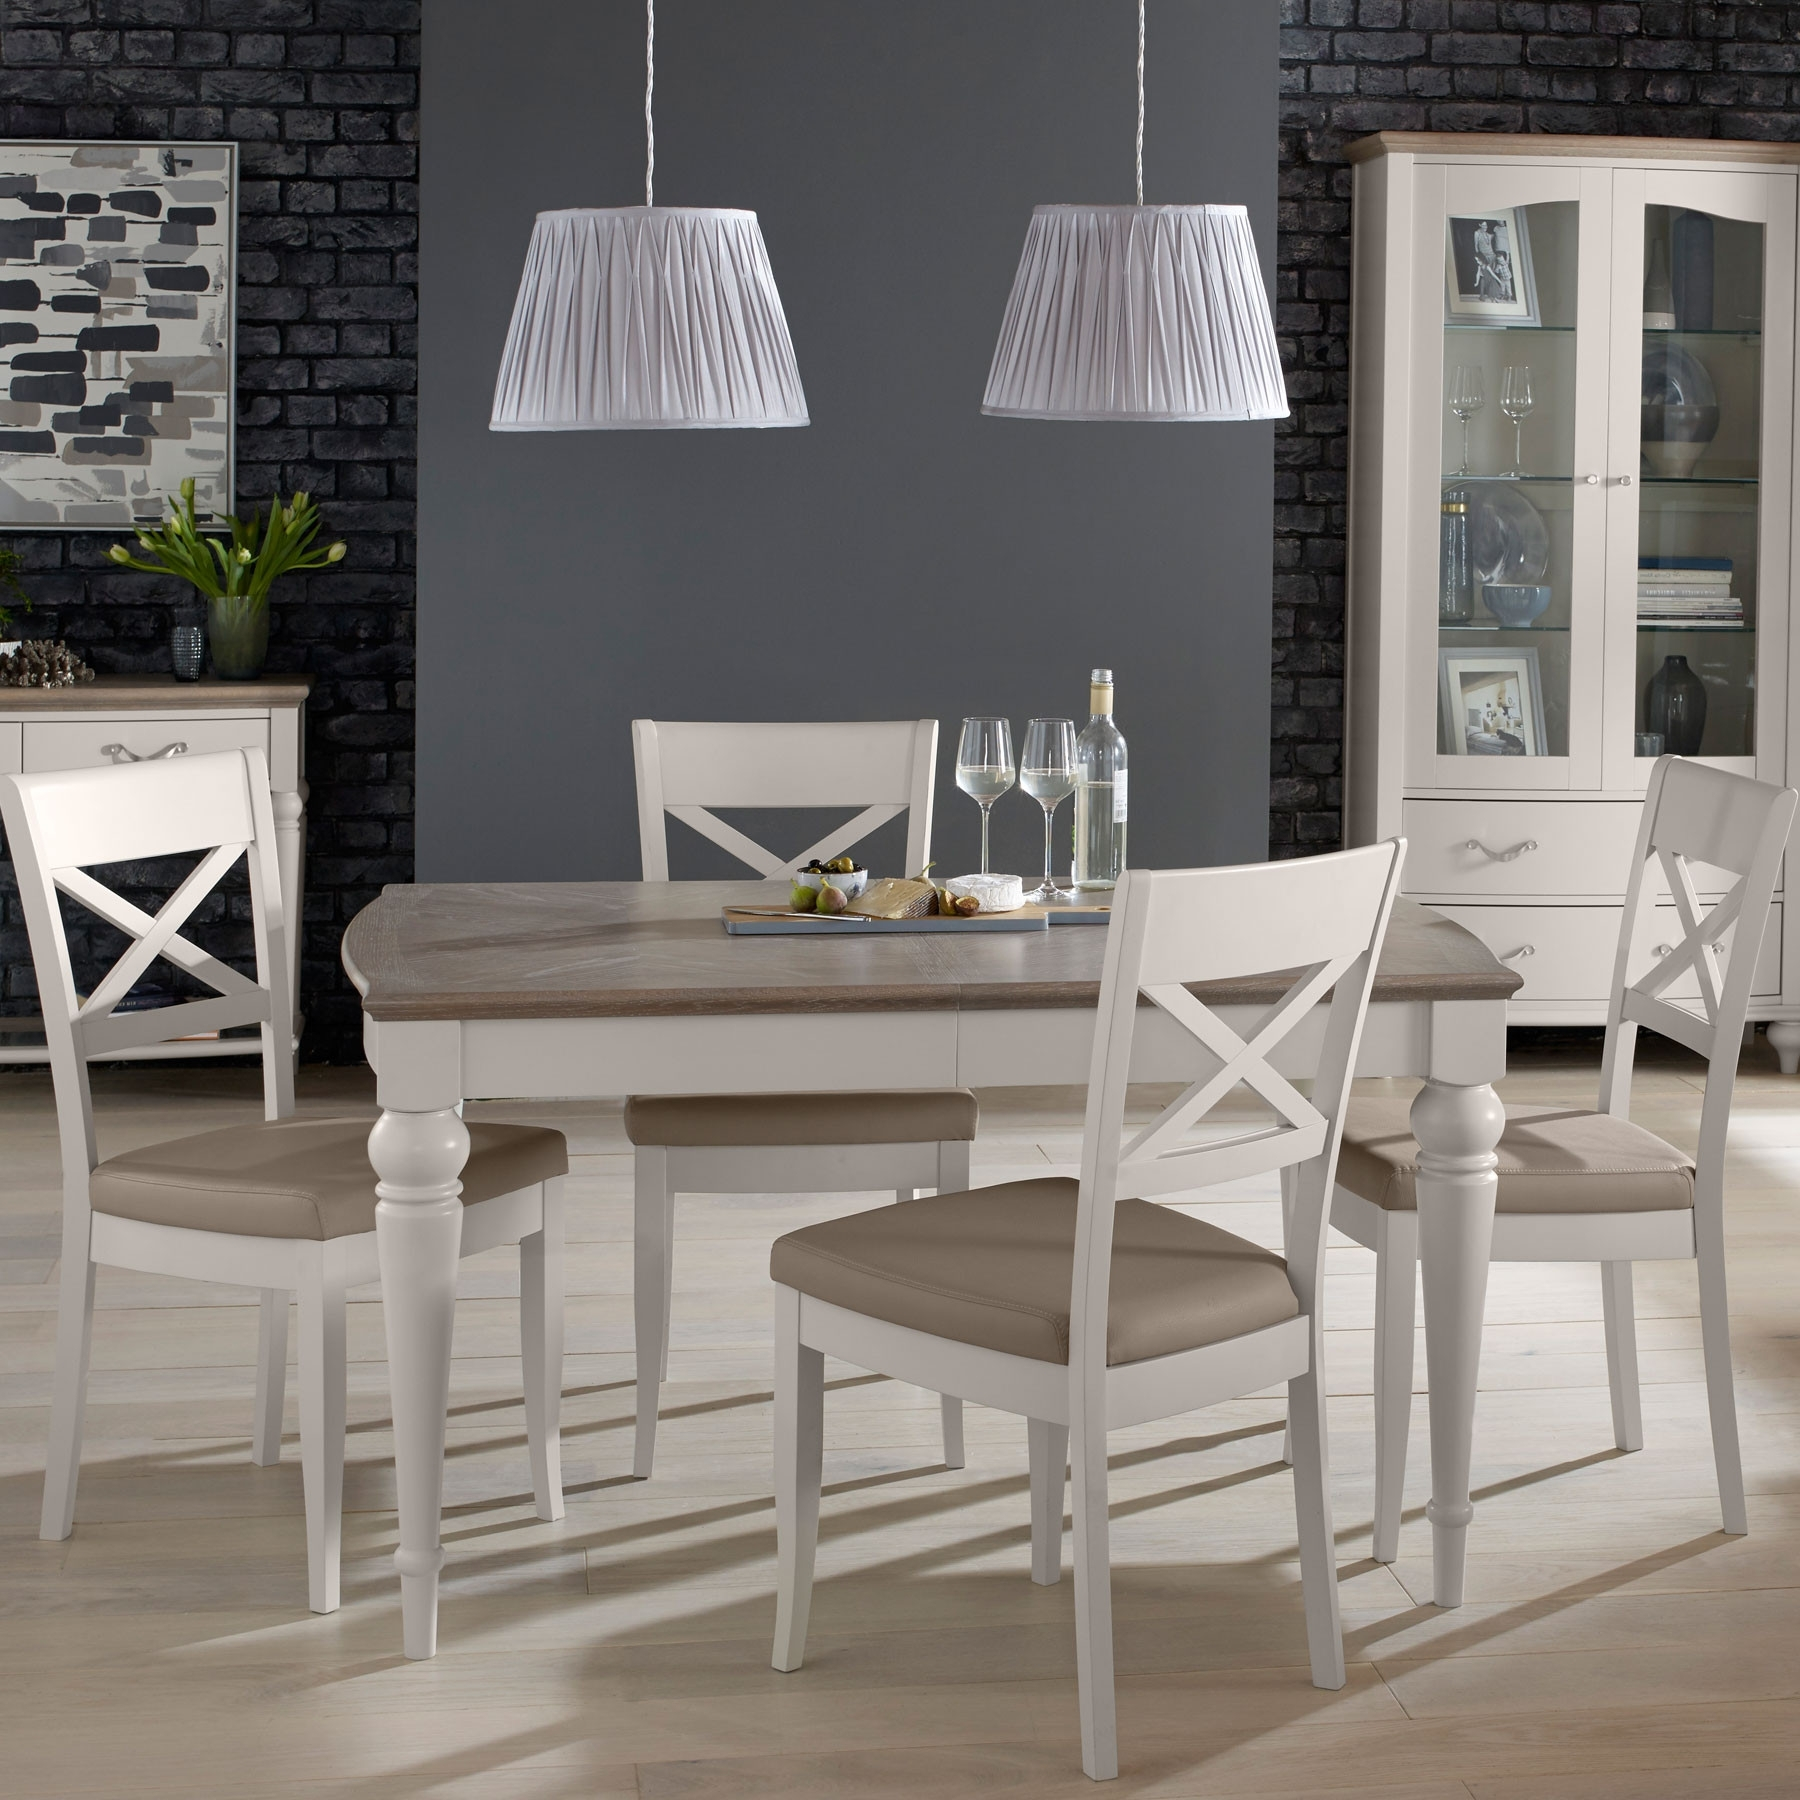 Small Extending Dining Tables And 4 Chairs With Regard To Most Up To Date Hampton Small Extending Dining Table & 4 Dining Chairs (View 24 of 25)